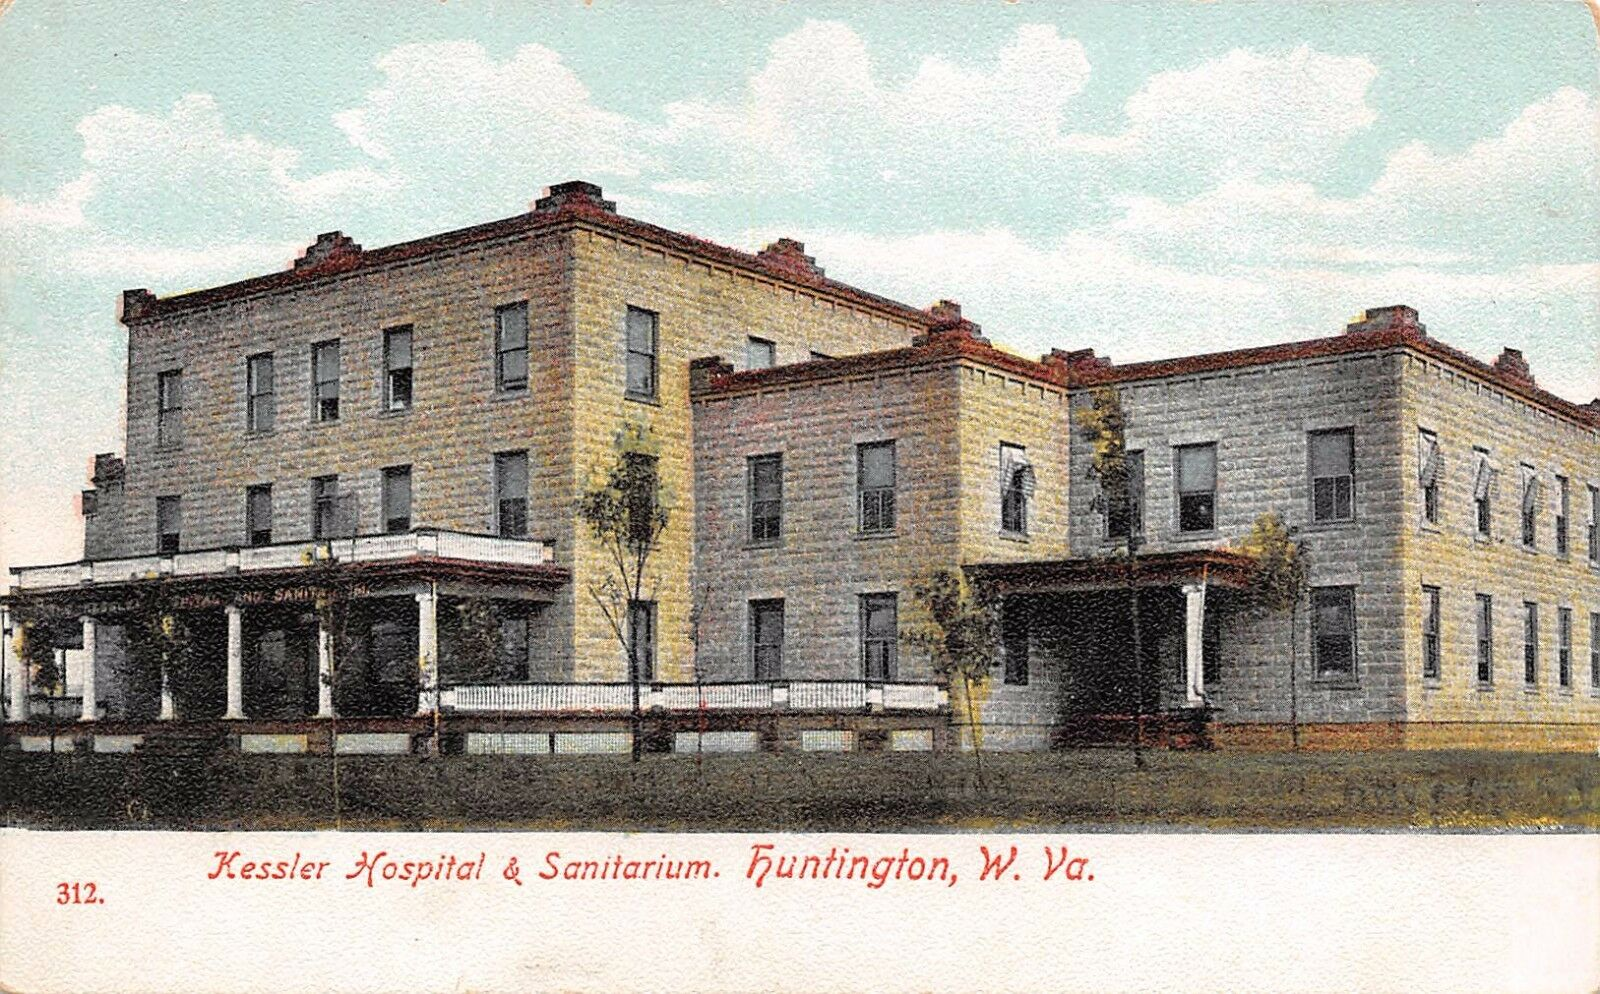 Postcard of the first Kessler Hospital and Sanitarium